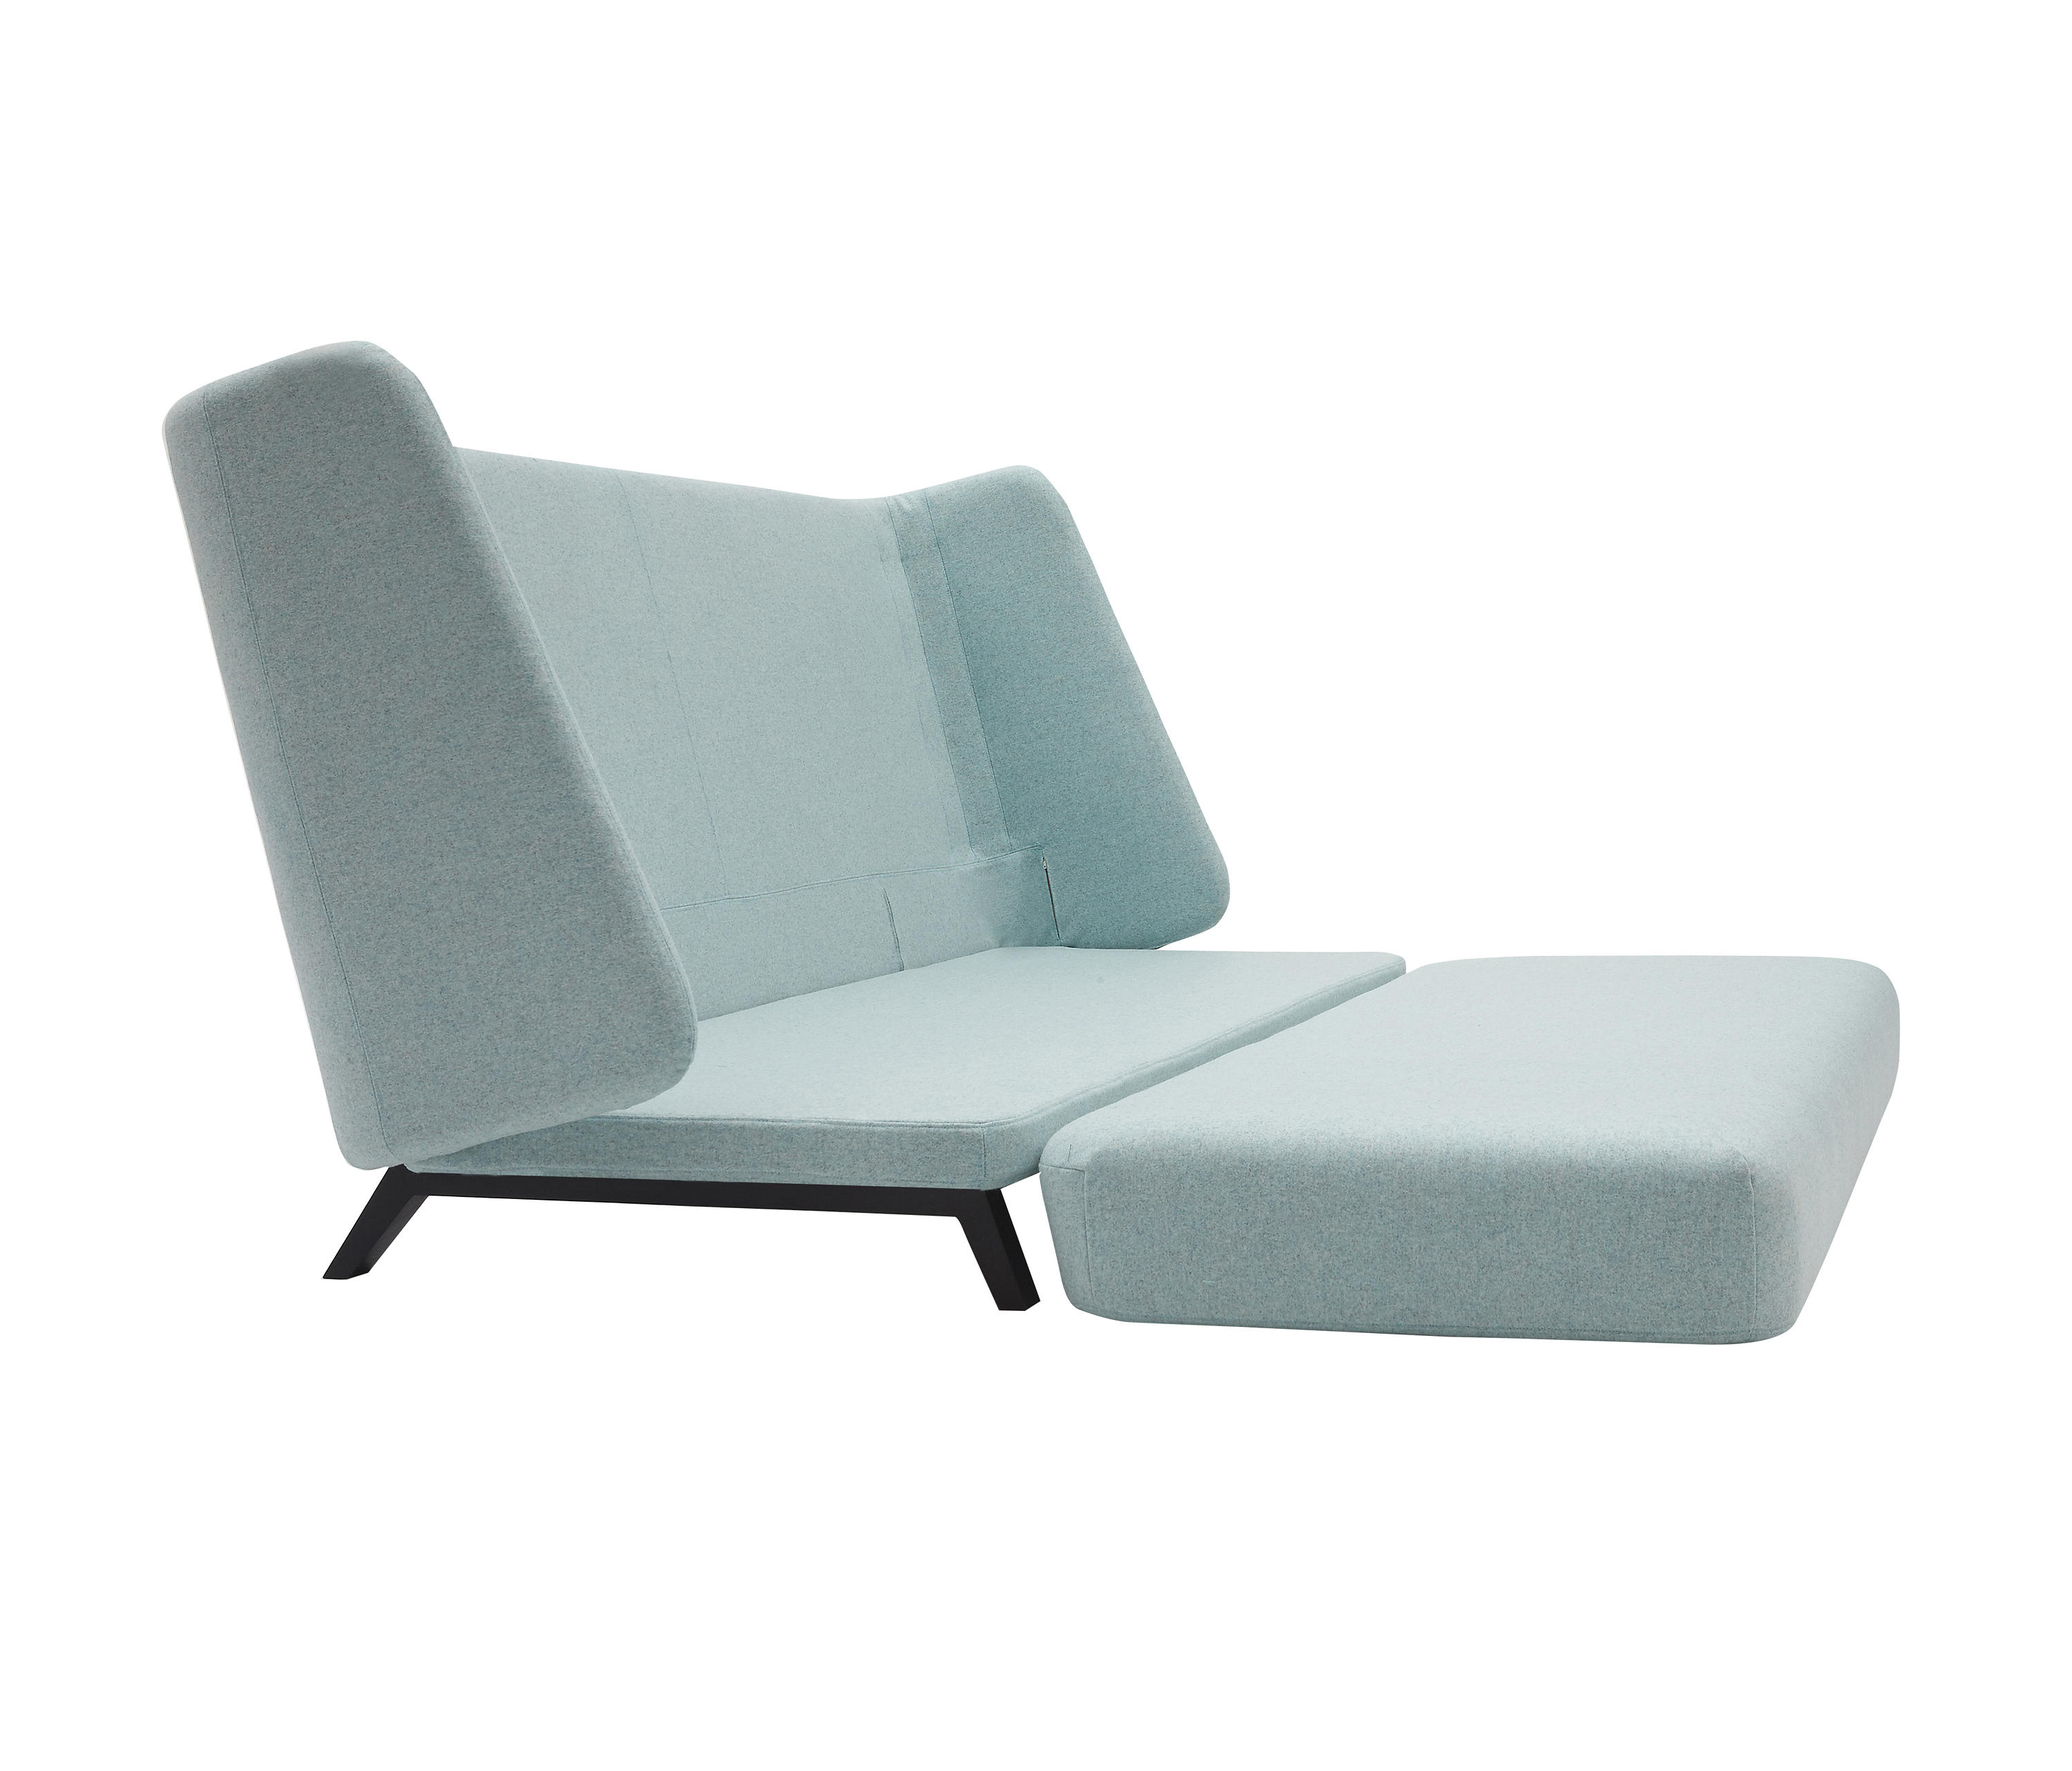 Incredible Jason Sofas From Softline Architonic Unemploymentrelief Wooden Chair Designs For Living Room Unemploymentrelieforg